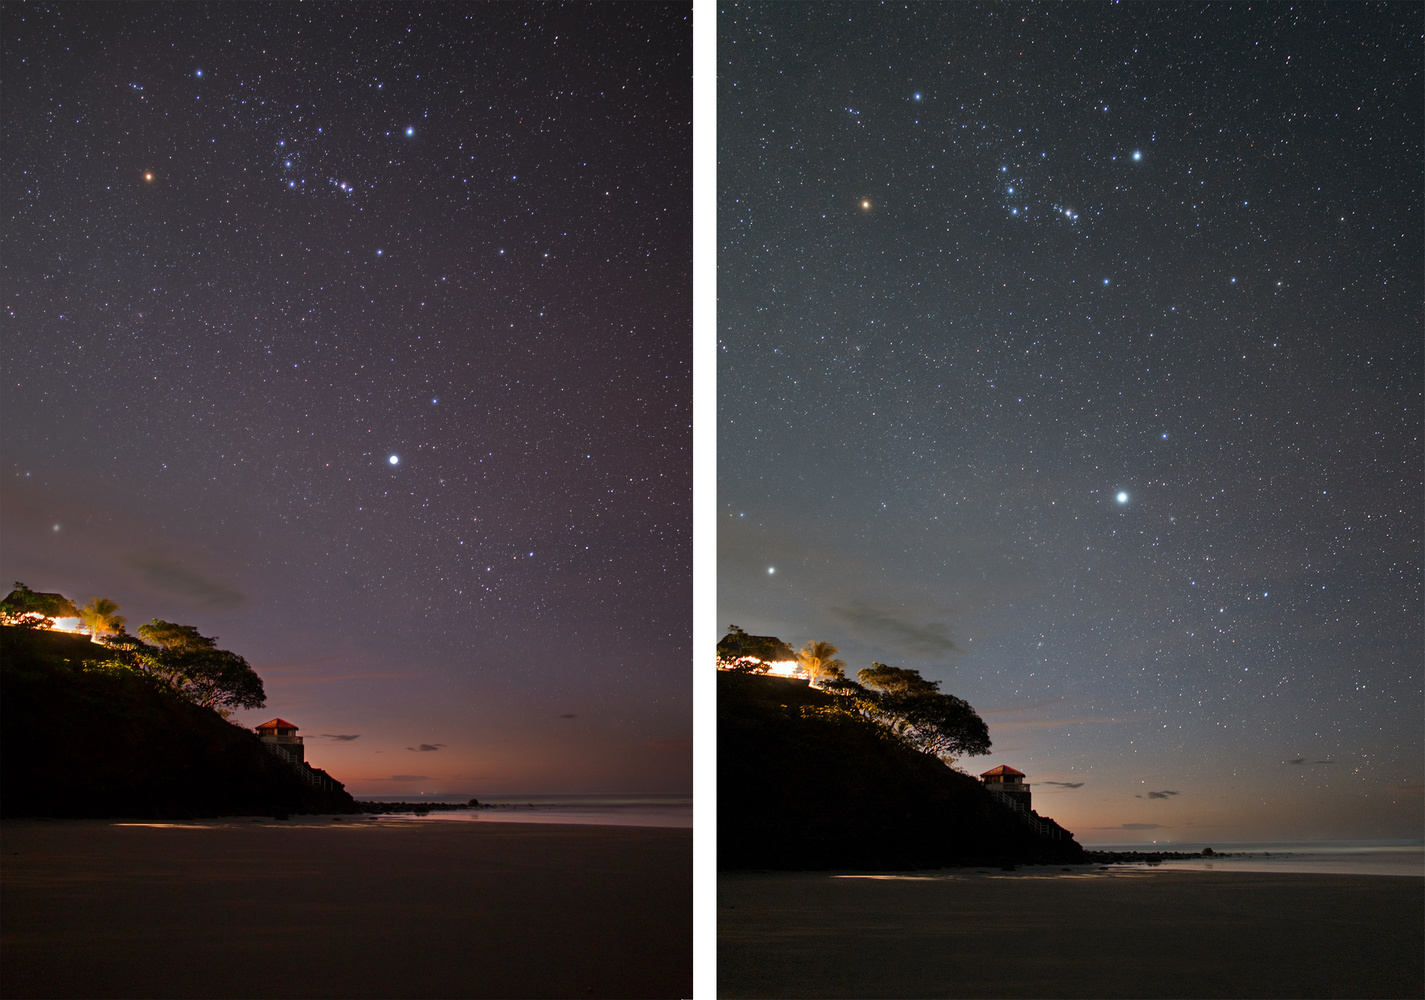 Are You Ready for the Summer Milky Way? | Fstoppers